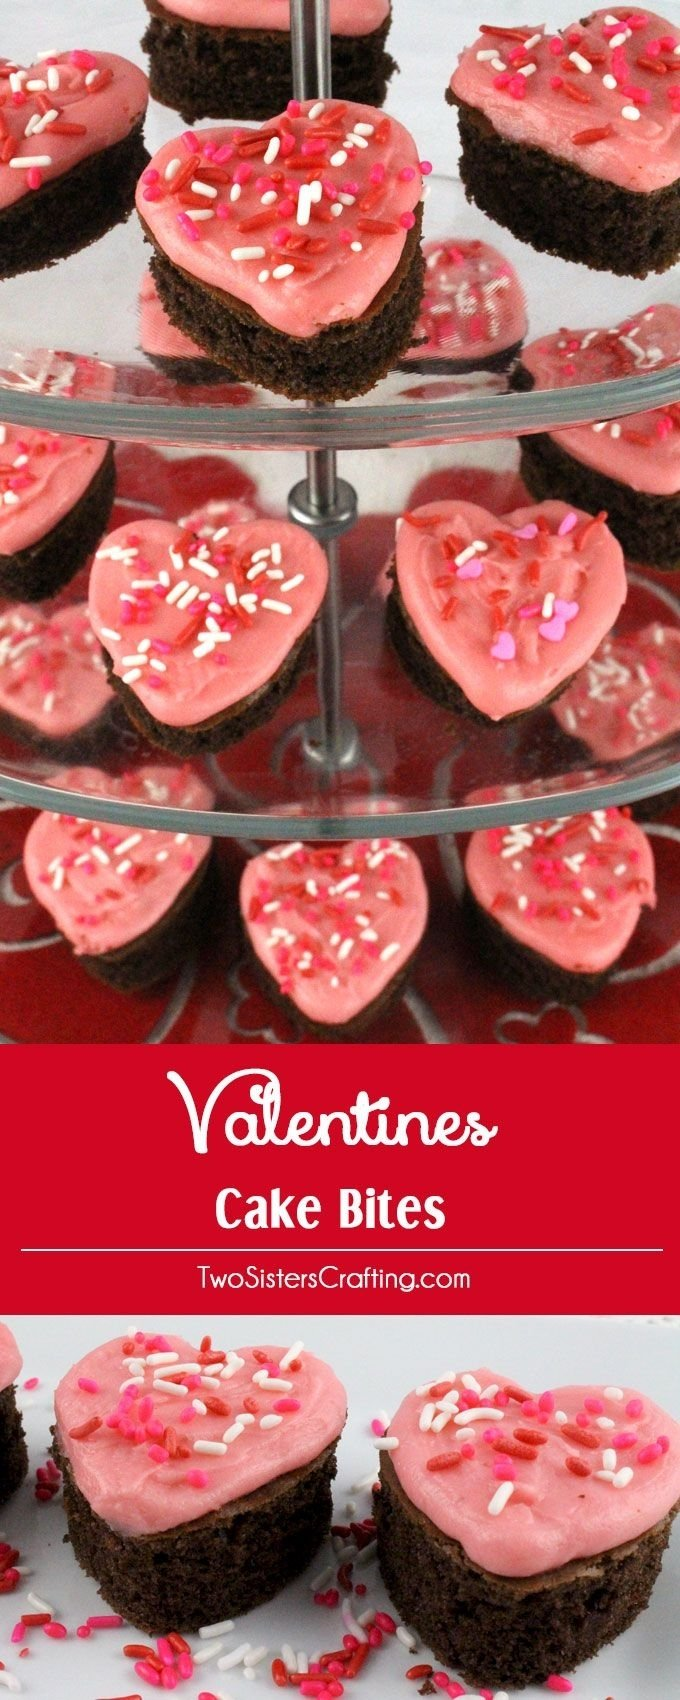 10 Lovable Unique Valentines Day Ideas For Him unique valentines day ideas for him fantastic unique valentines day 2020